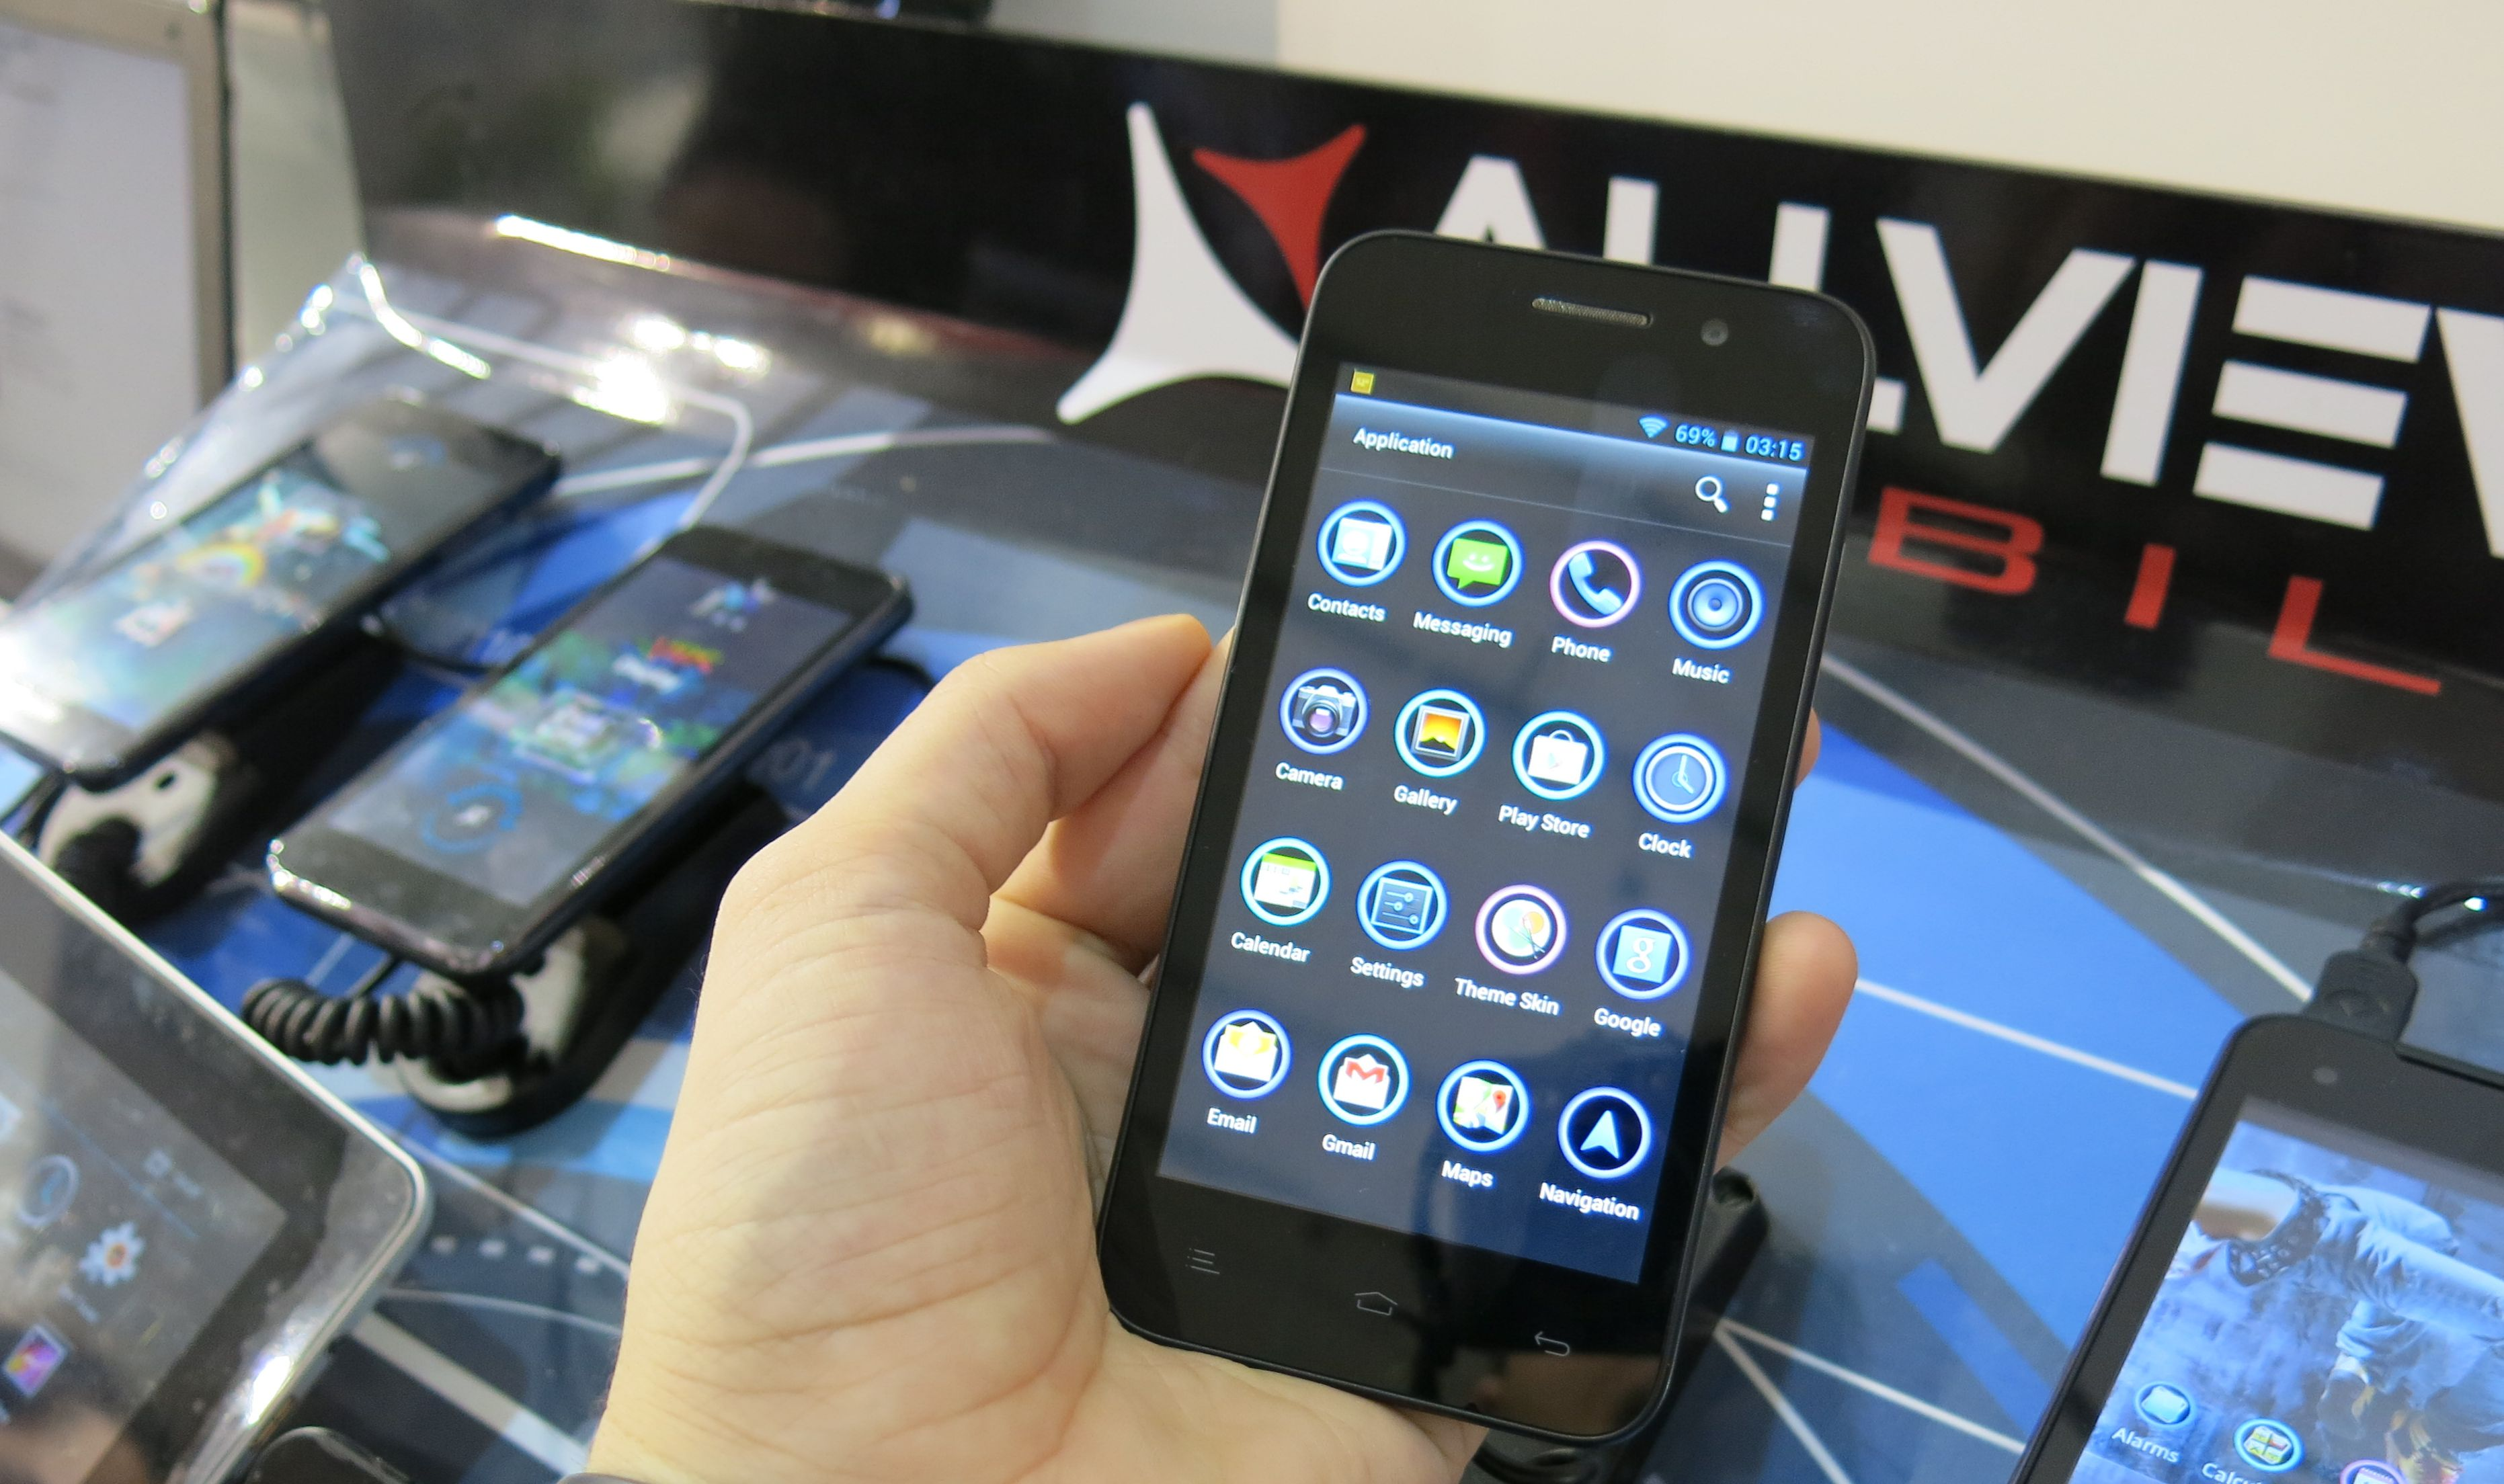 Allview P5 Quad lansat la MWC 2013 [Hands-On]